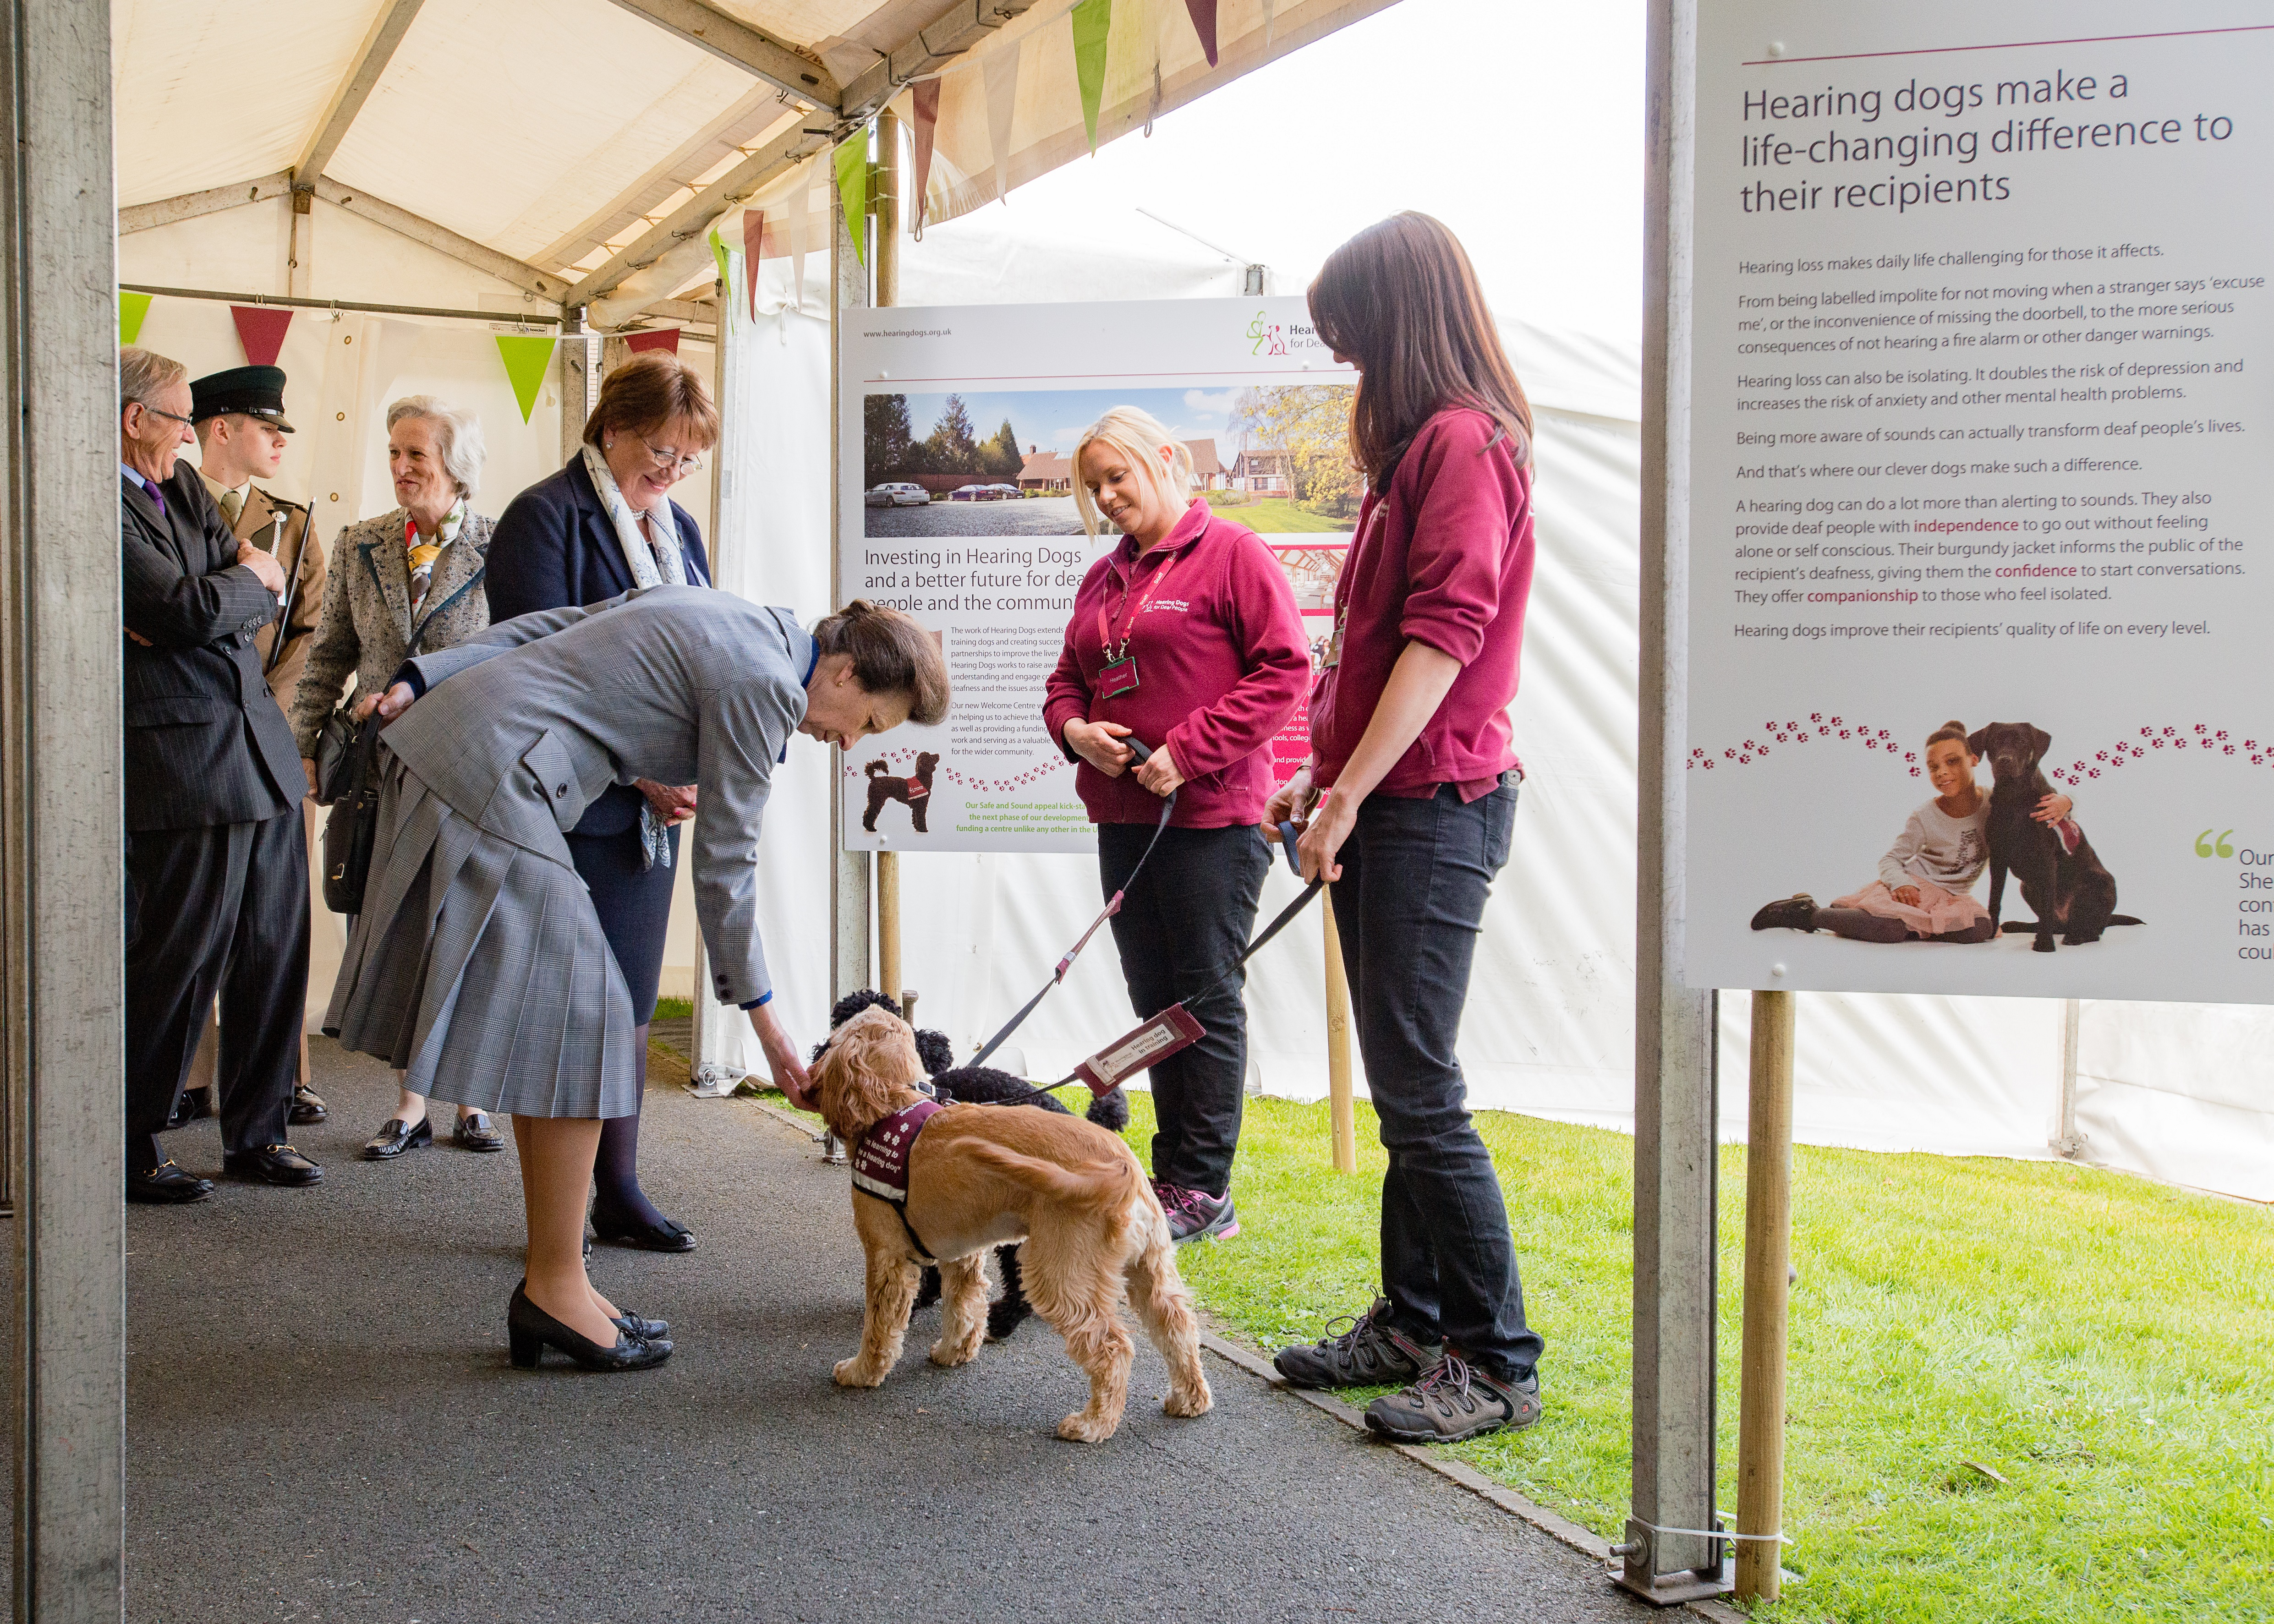 The Princess Royal visits Hearing Dogs for Deaf People | The